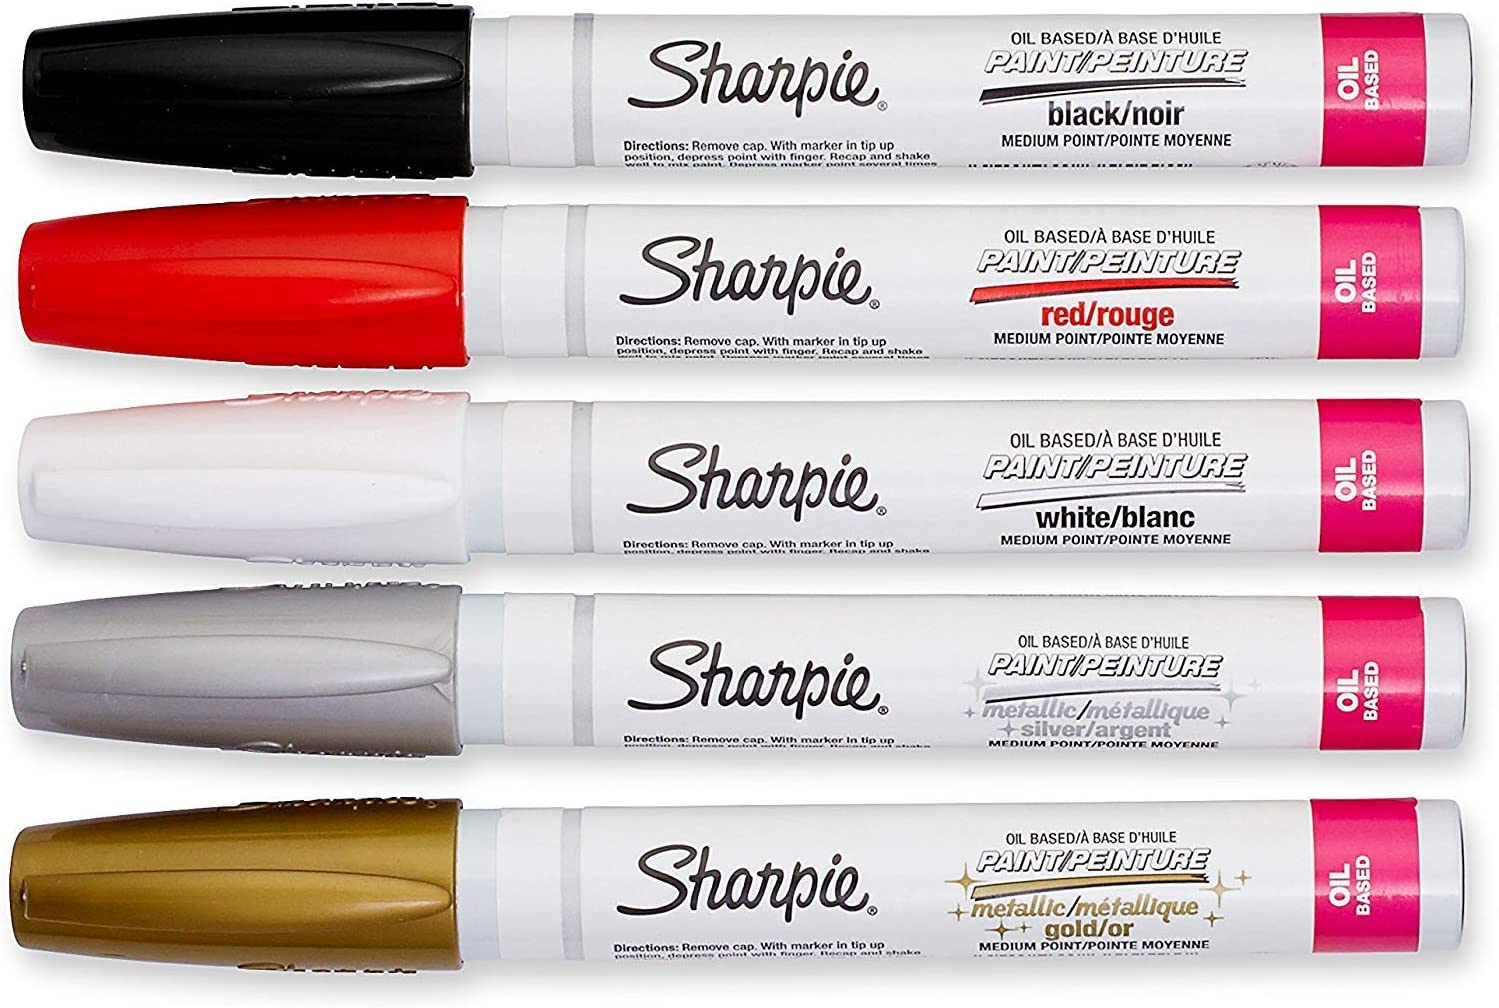 Sharpie Oil-Based Paint Markers, Medium Point, Assorted & Metallic Colors, 5 Count - Great for Rock Painting (New Version)